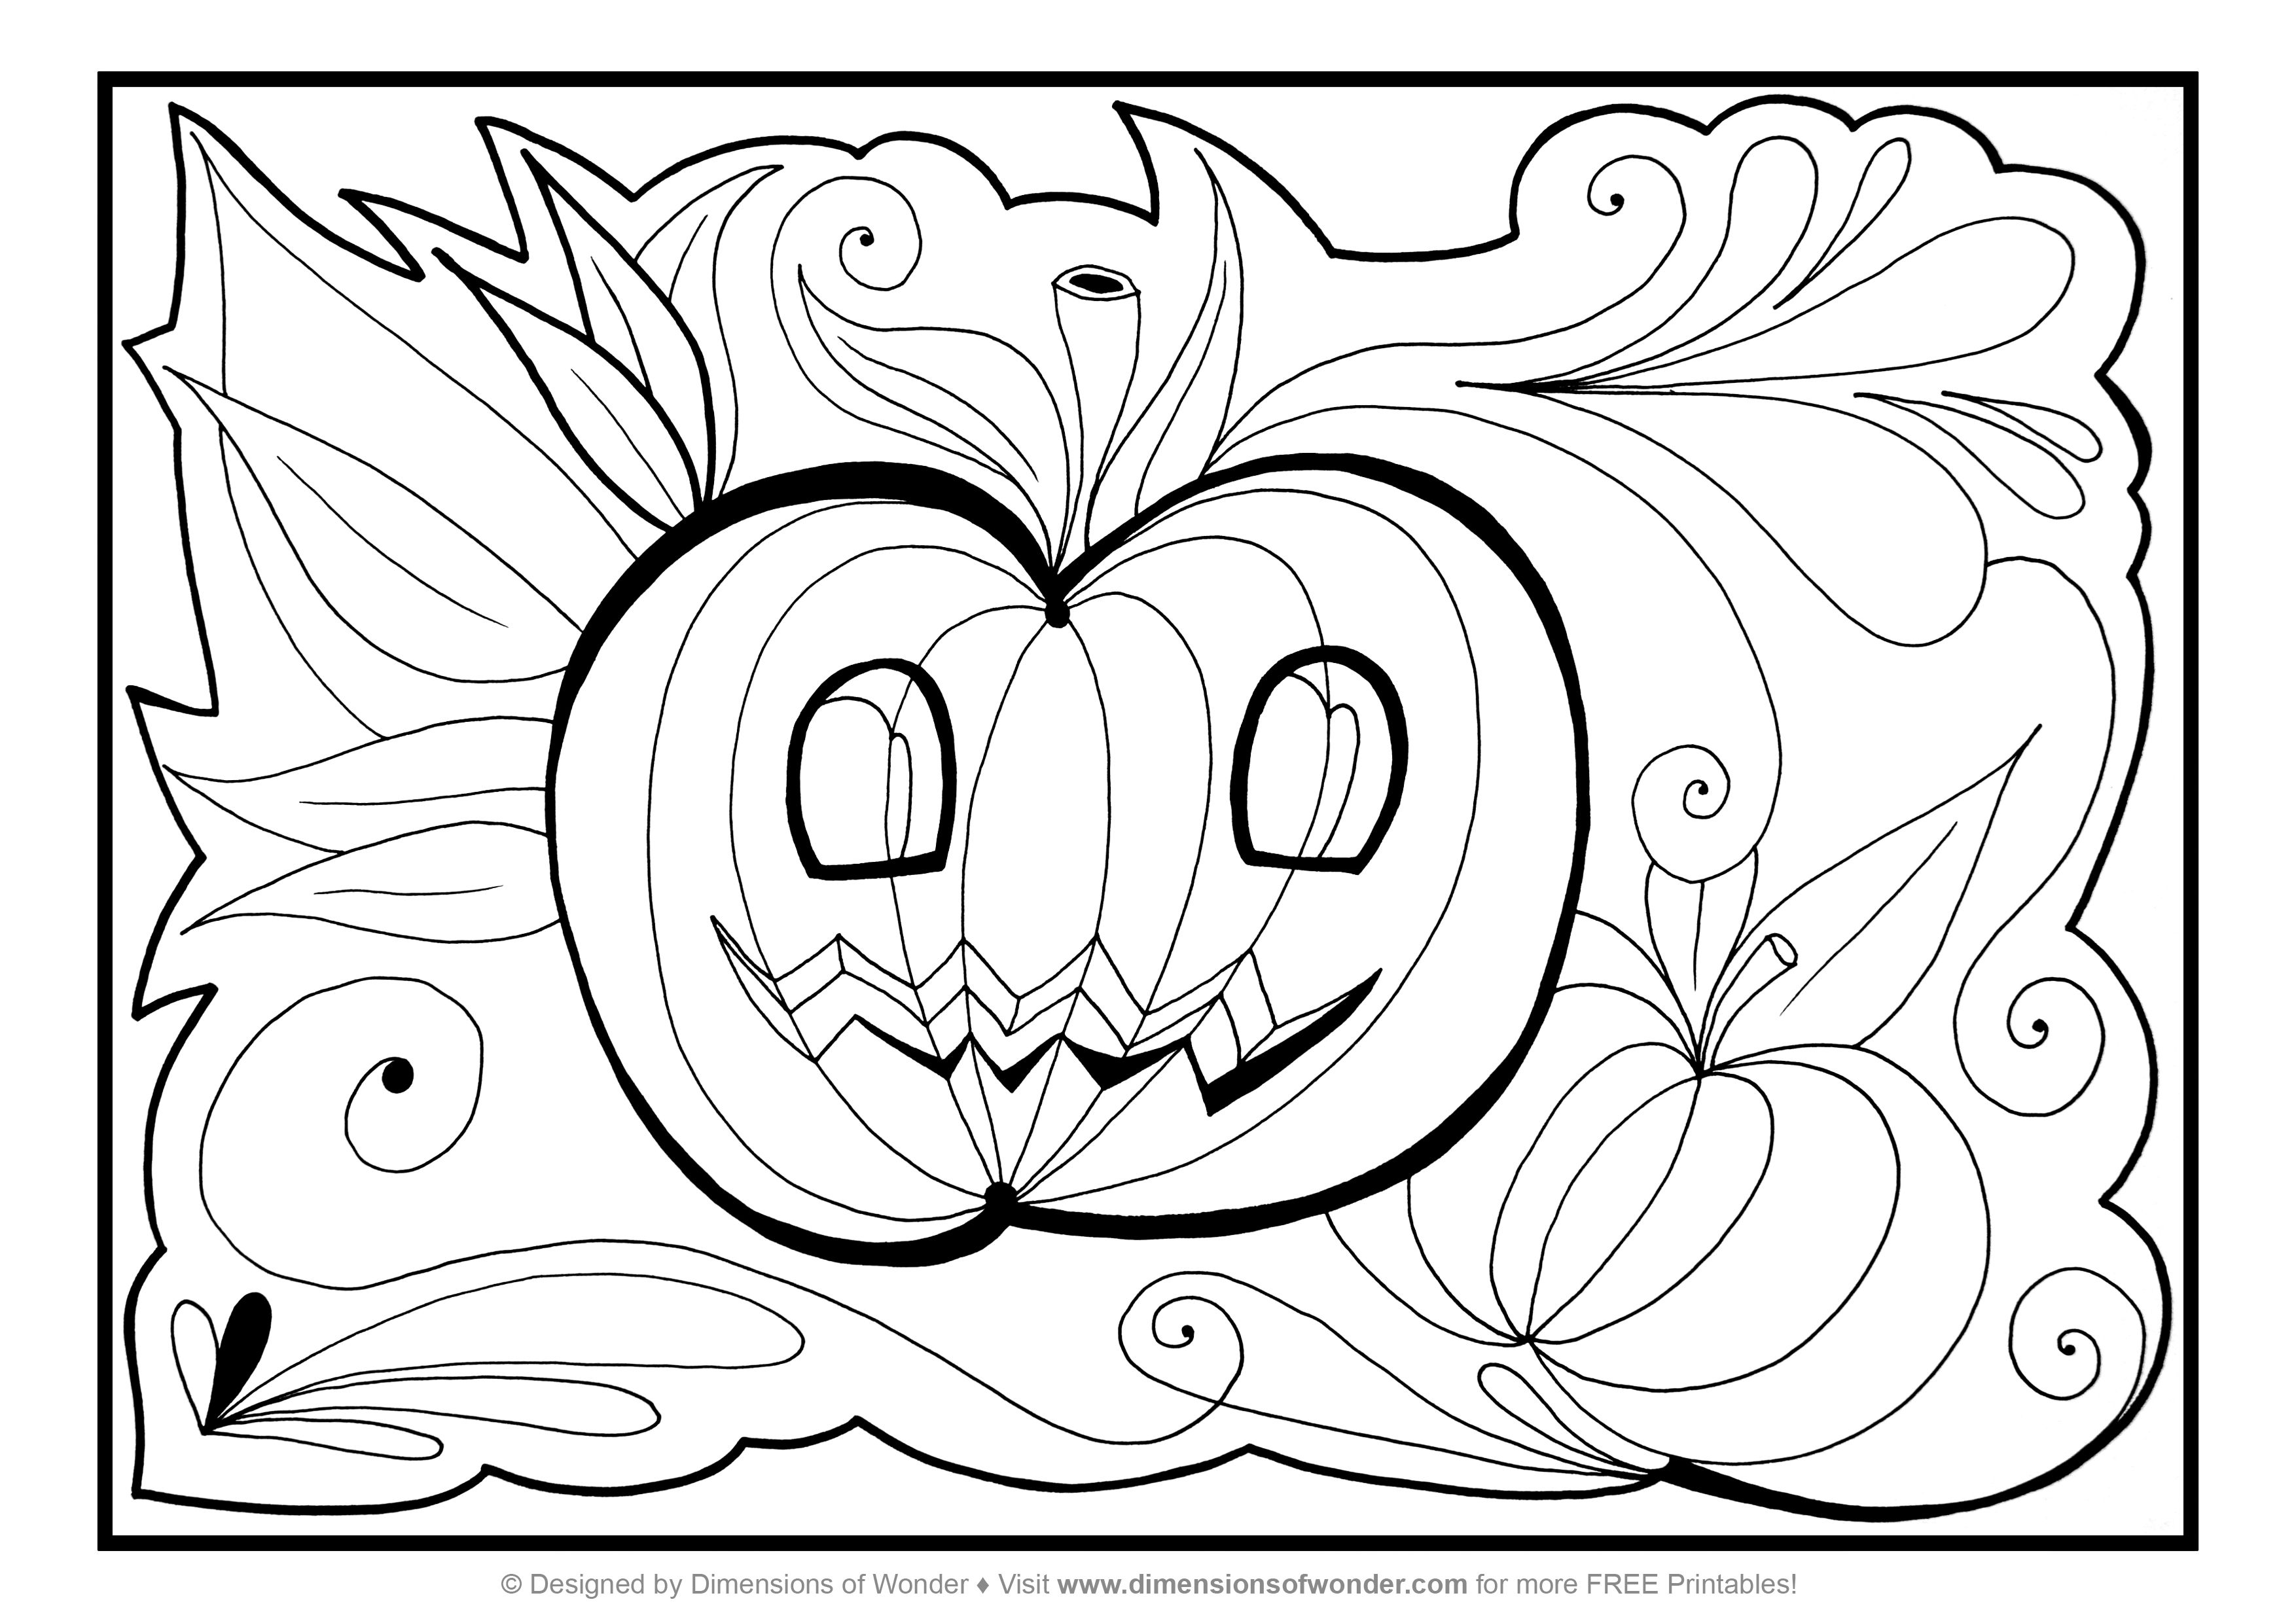 Free Printable Halloween Coloring Pages Suitable For Toddlers And Preschool And Kindergarten